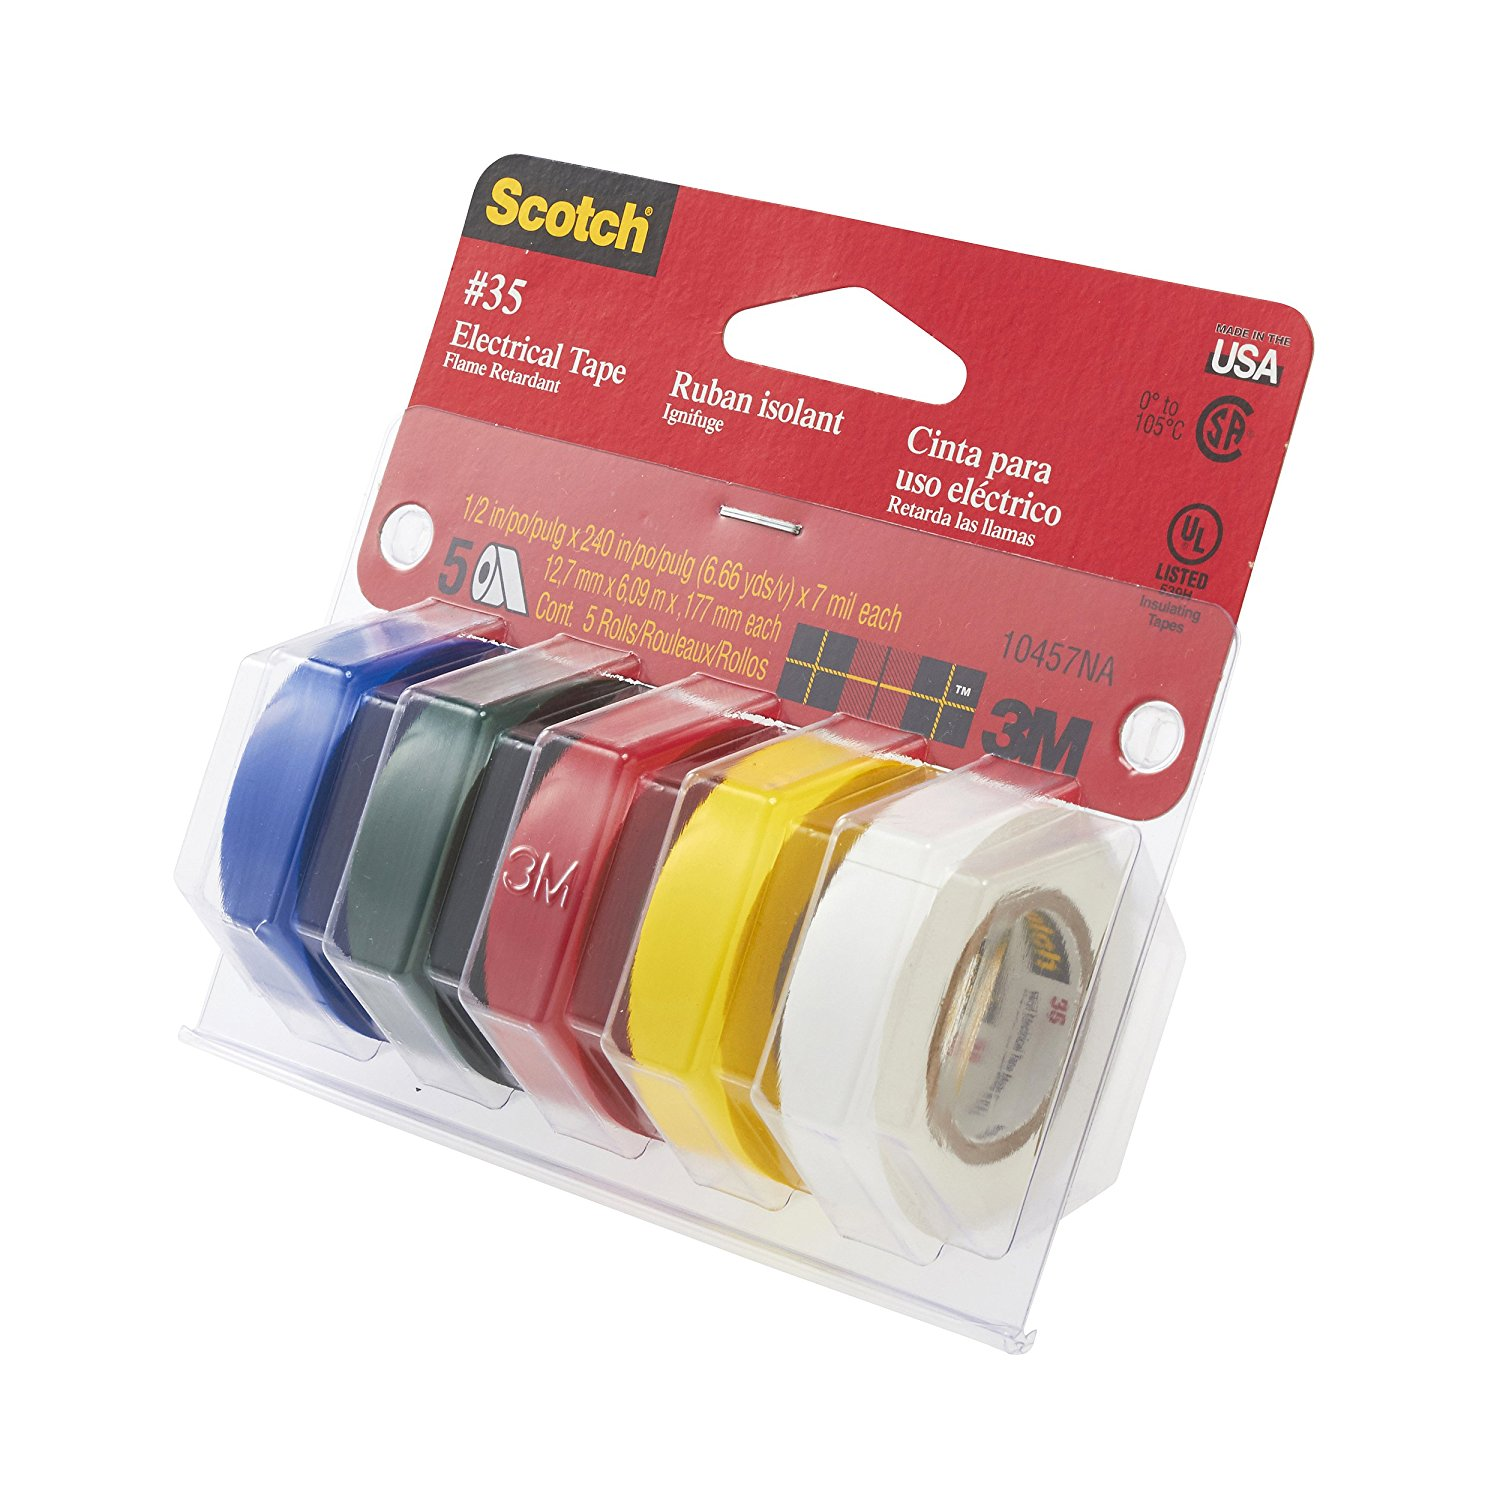 3M Scotch Electrical Tape Value Pack